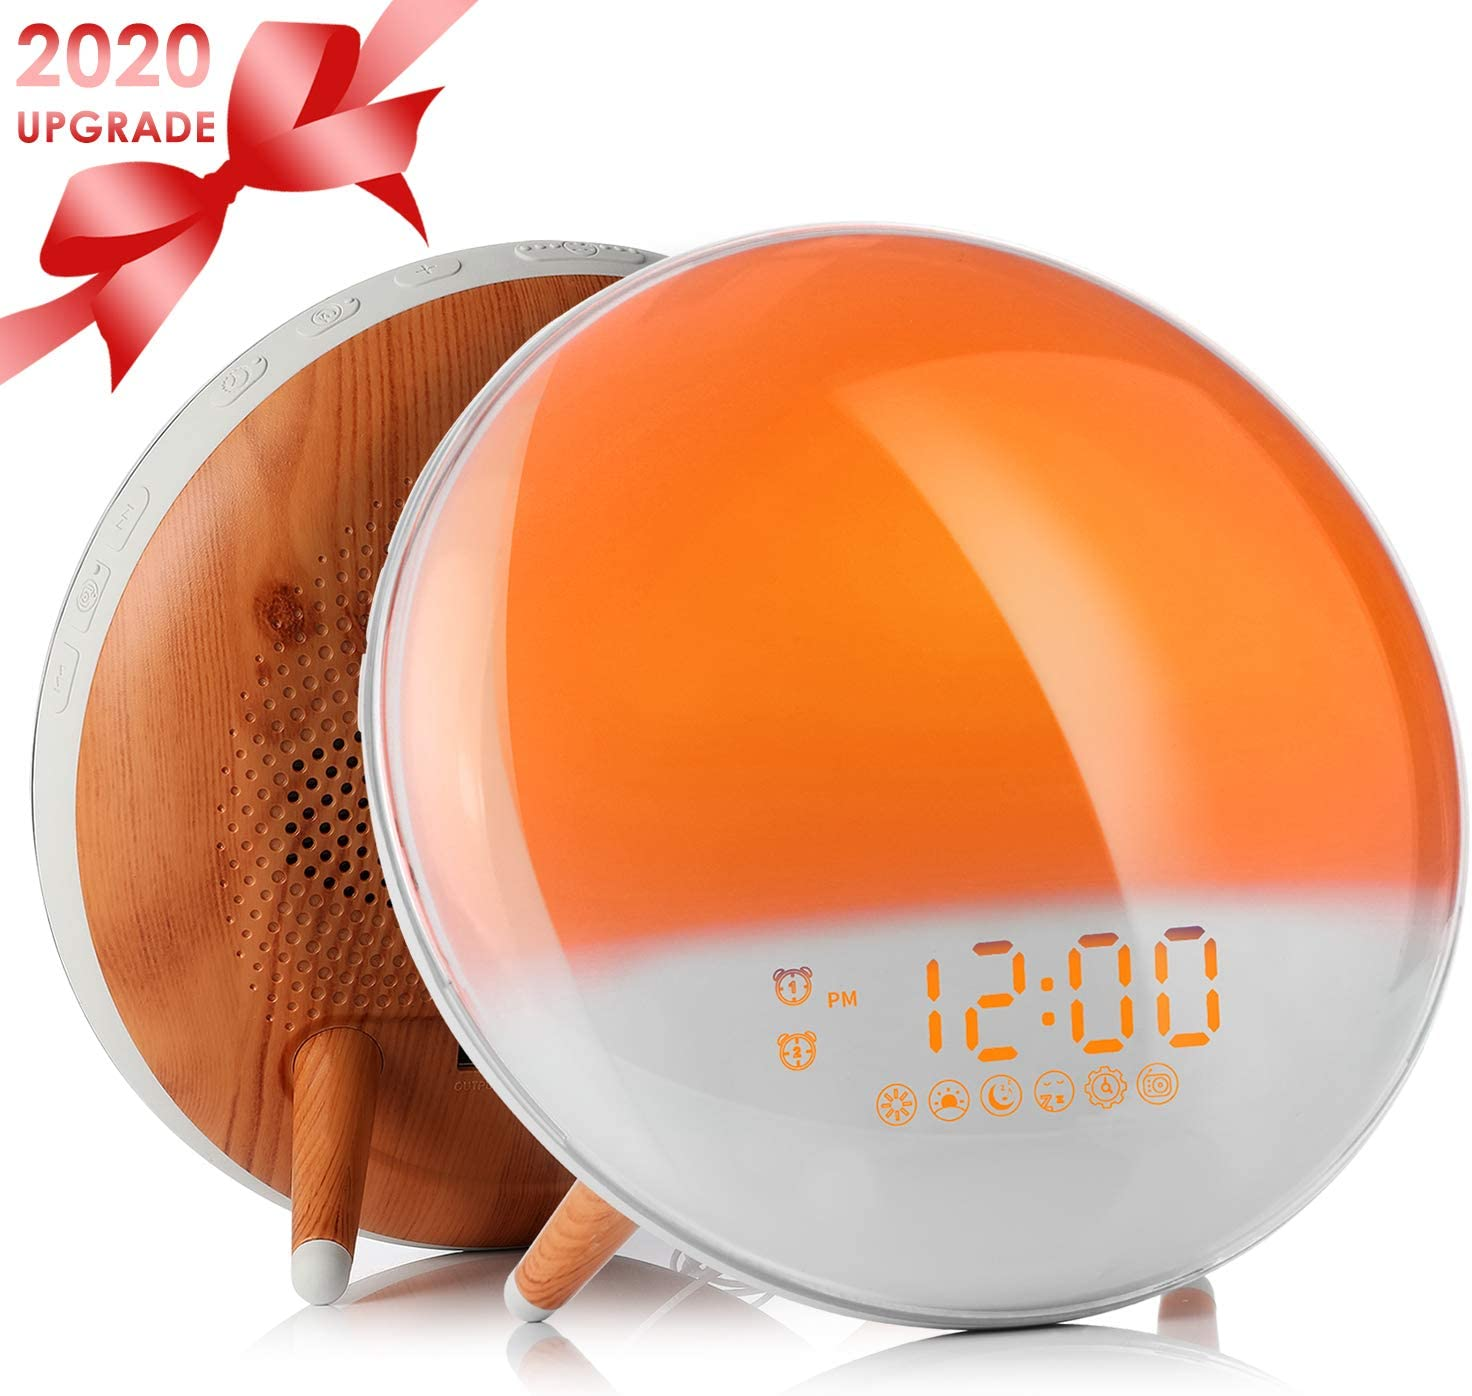 Wake Up Light Alarm Clock, Sunrise/Sunset Simulation Alarm Clock with Dual Alarms,Snooze Function, 7 Colors Atmosphere Lamp, FM Radio&7 Natural Sound, USB Charger for Kids Adults Bedroom Home Office